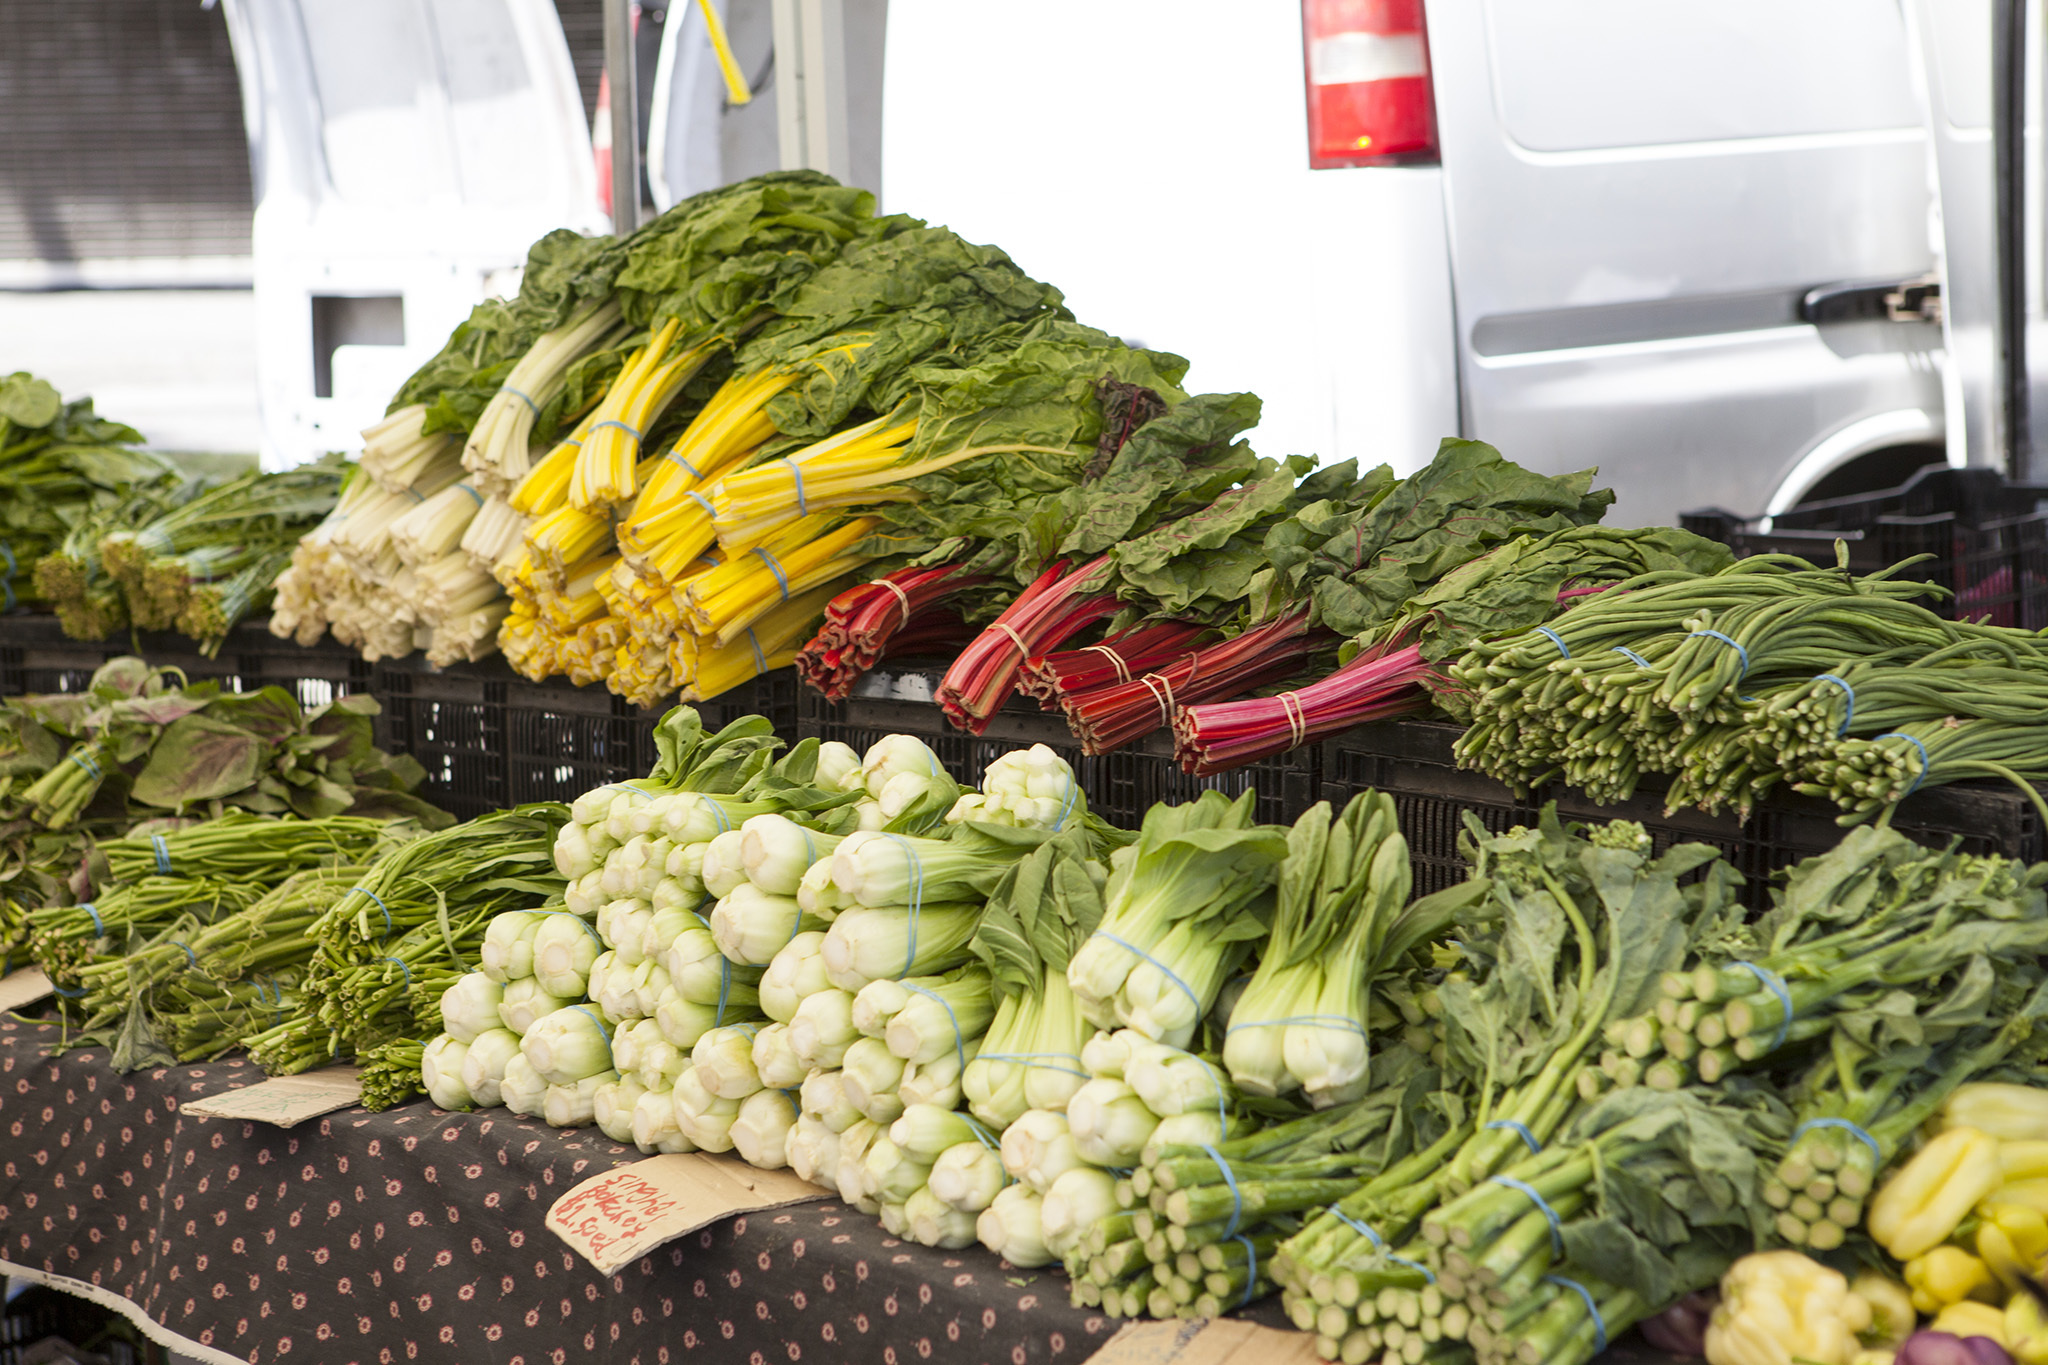 Studio City Farmers' Market